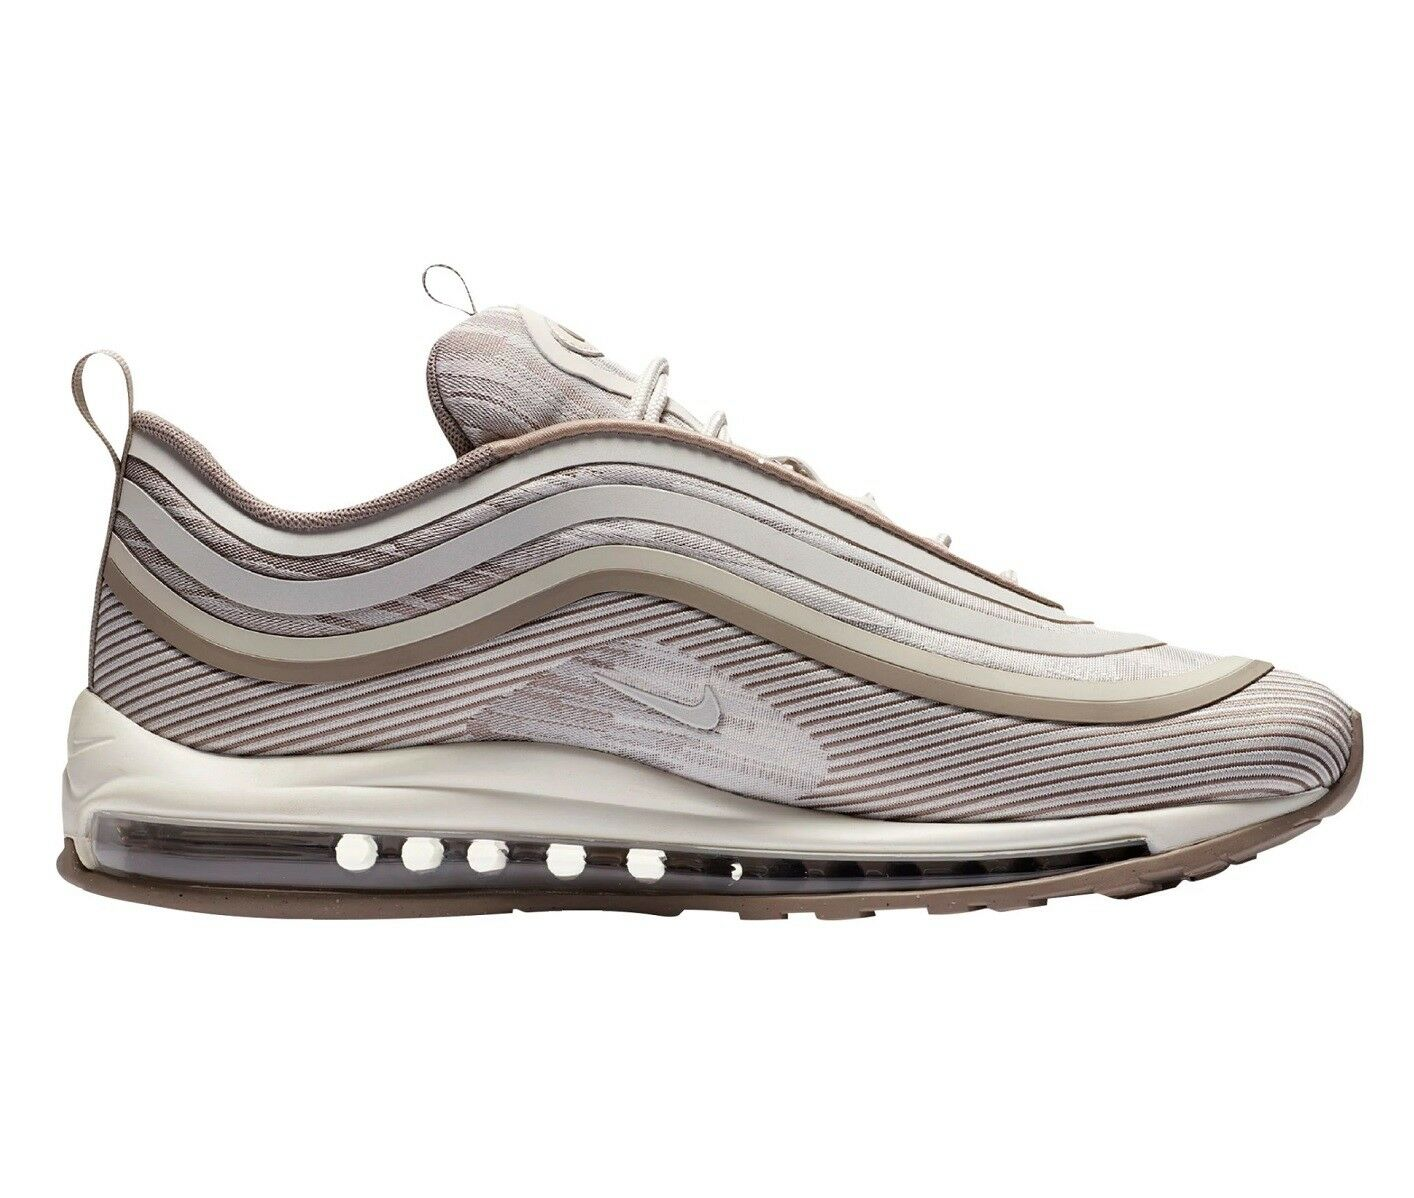 Nike Air Max 97 UL '17 Mens 918356-2018 Sepia Stone Sand Running Shoes Comfortable Seasonal clearance sale